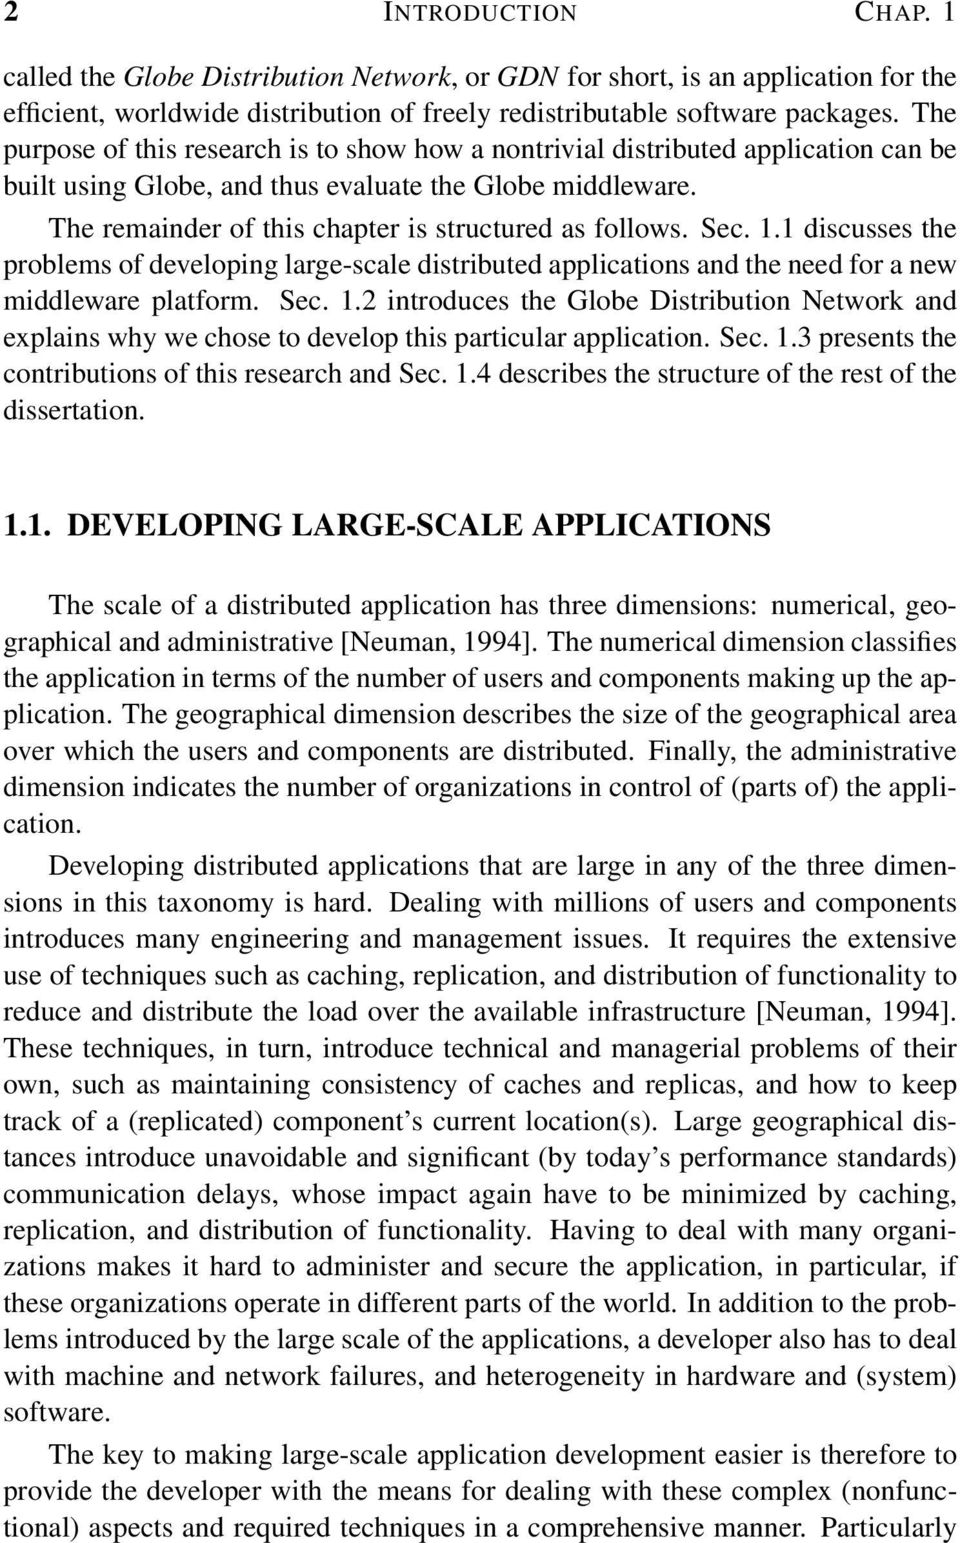 The remainder of this chapter is structured as follows. Sec. 1.1 discusses the problems of developing large-scale distributed applications and the need for a new middleware platform. Sec. 1.2 introduces the Globe Distribution Network and explains why we chose to develop this particular application.